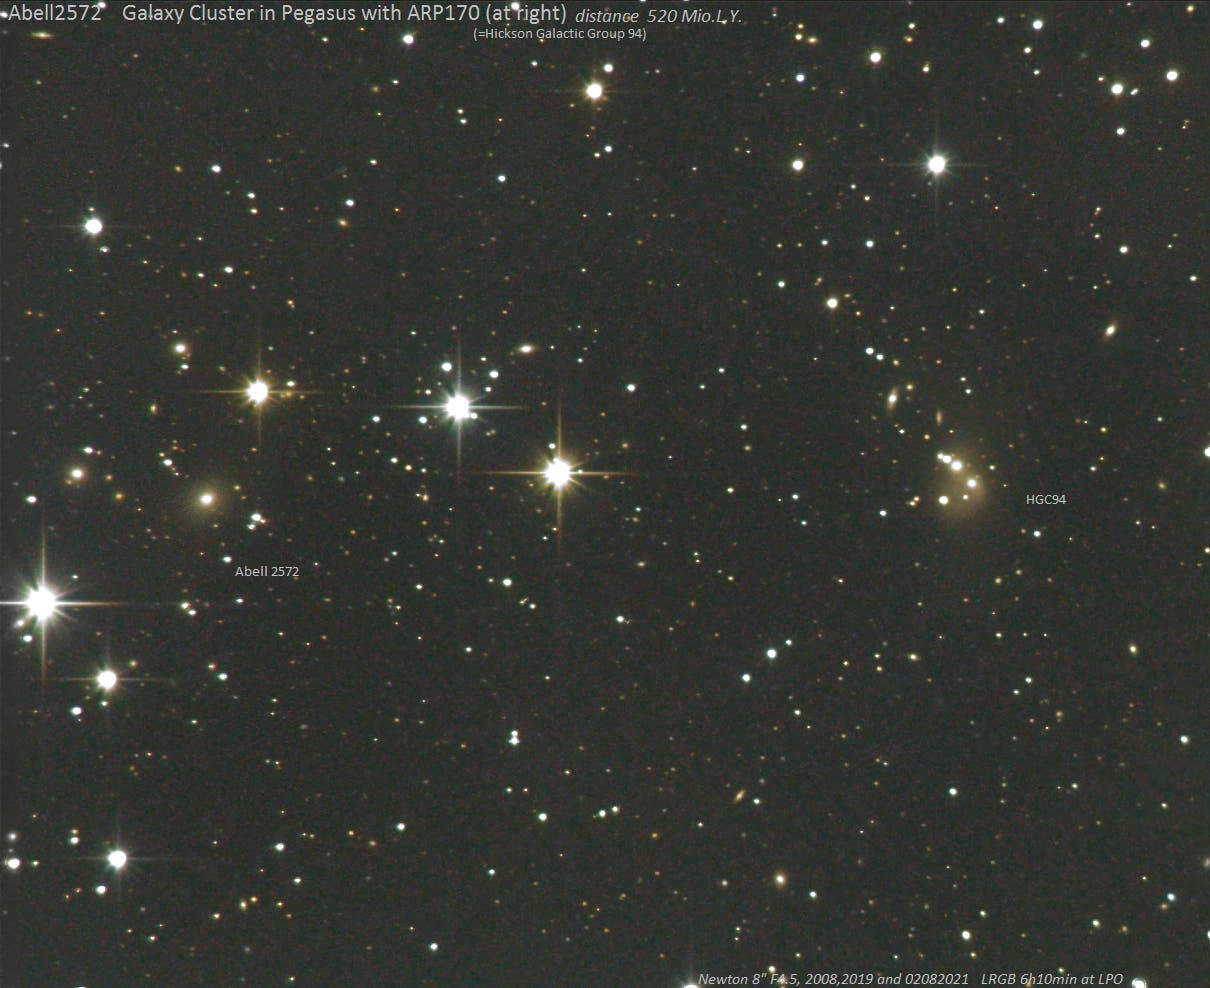 Abell 2572 mit ARP170 (Hickson Compact Group 94)  in Pegasus